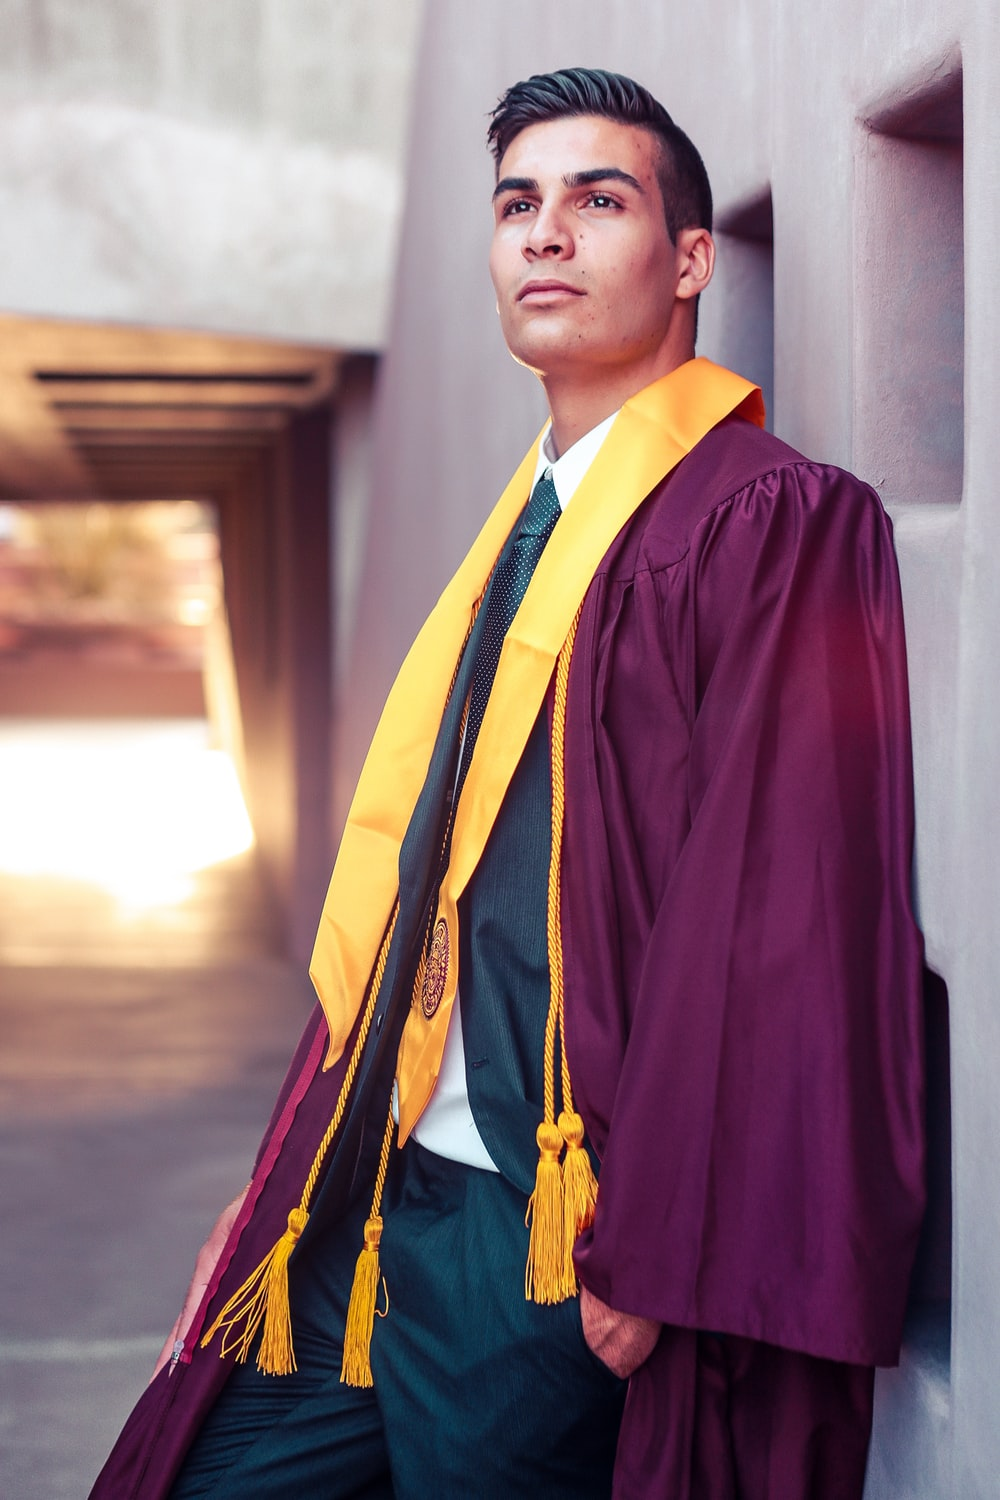 man standing while wearing purple academic gown